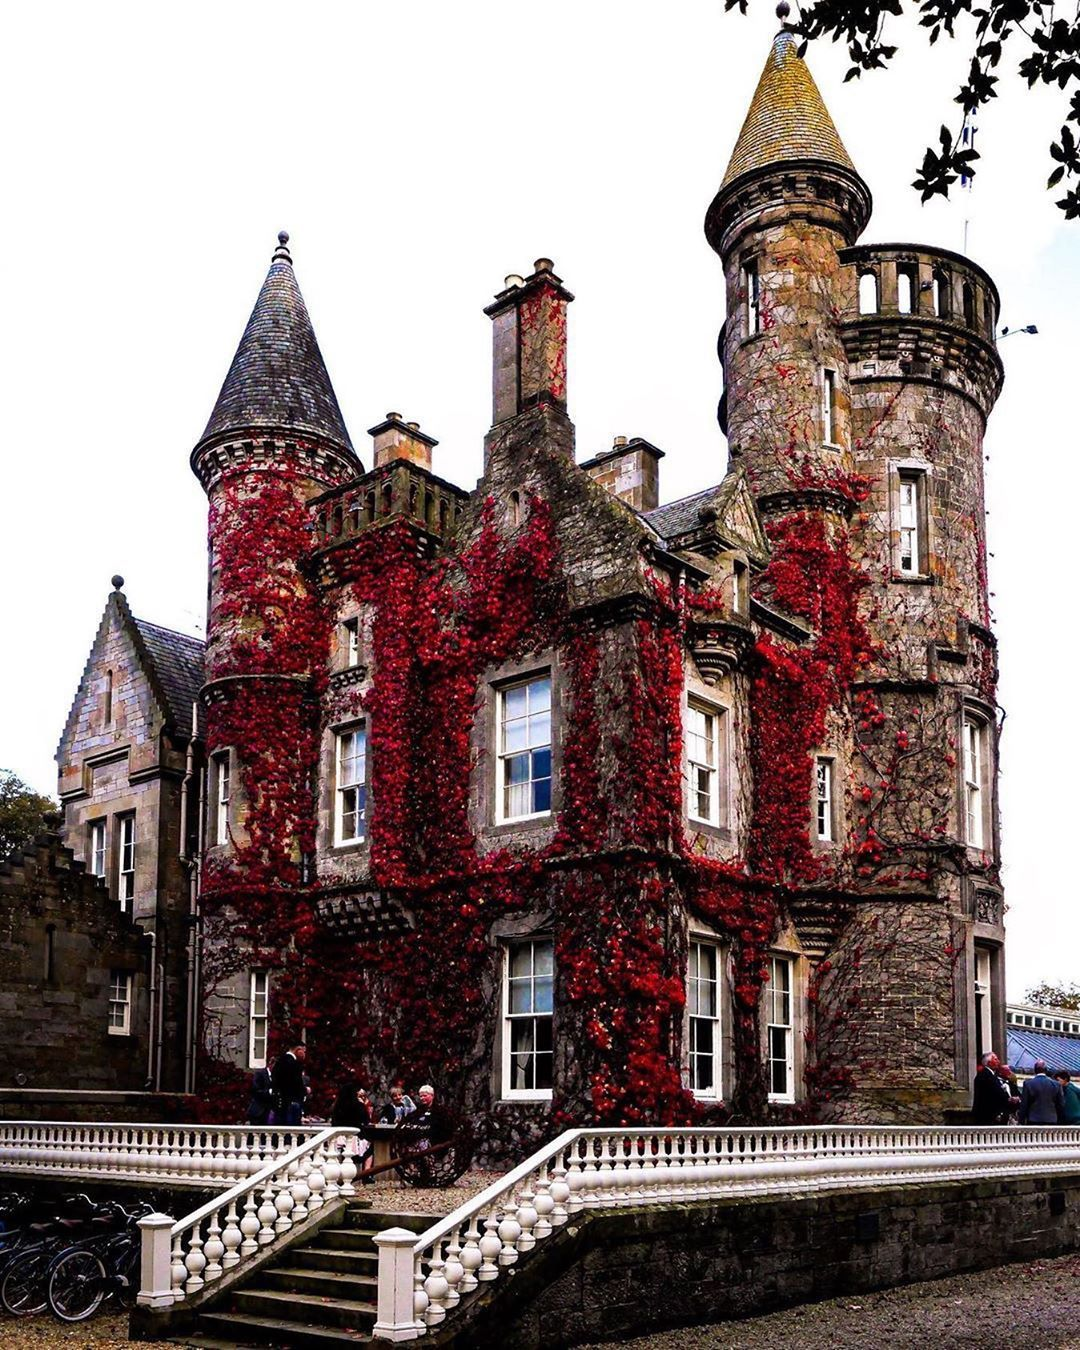 Castles Of Scotland On Instagram Carlowrie Castle Was Built In 1852 For Thomas Hutchison A Wine Merchant And In 2020 Victorian Castle Turret House Best Of Scotland